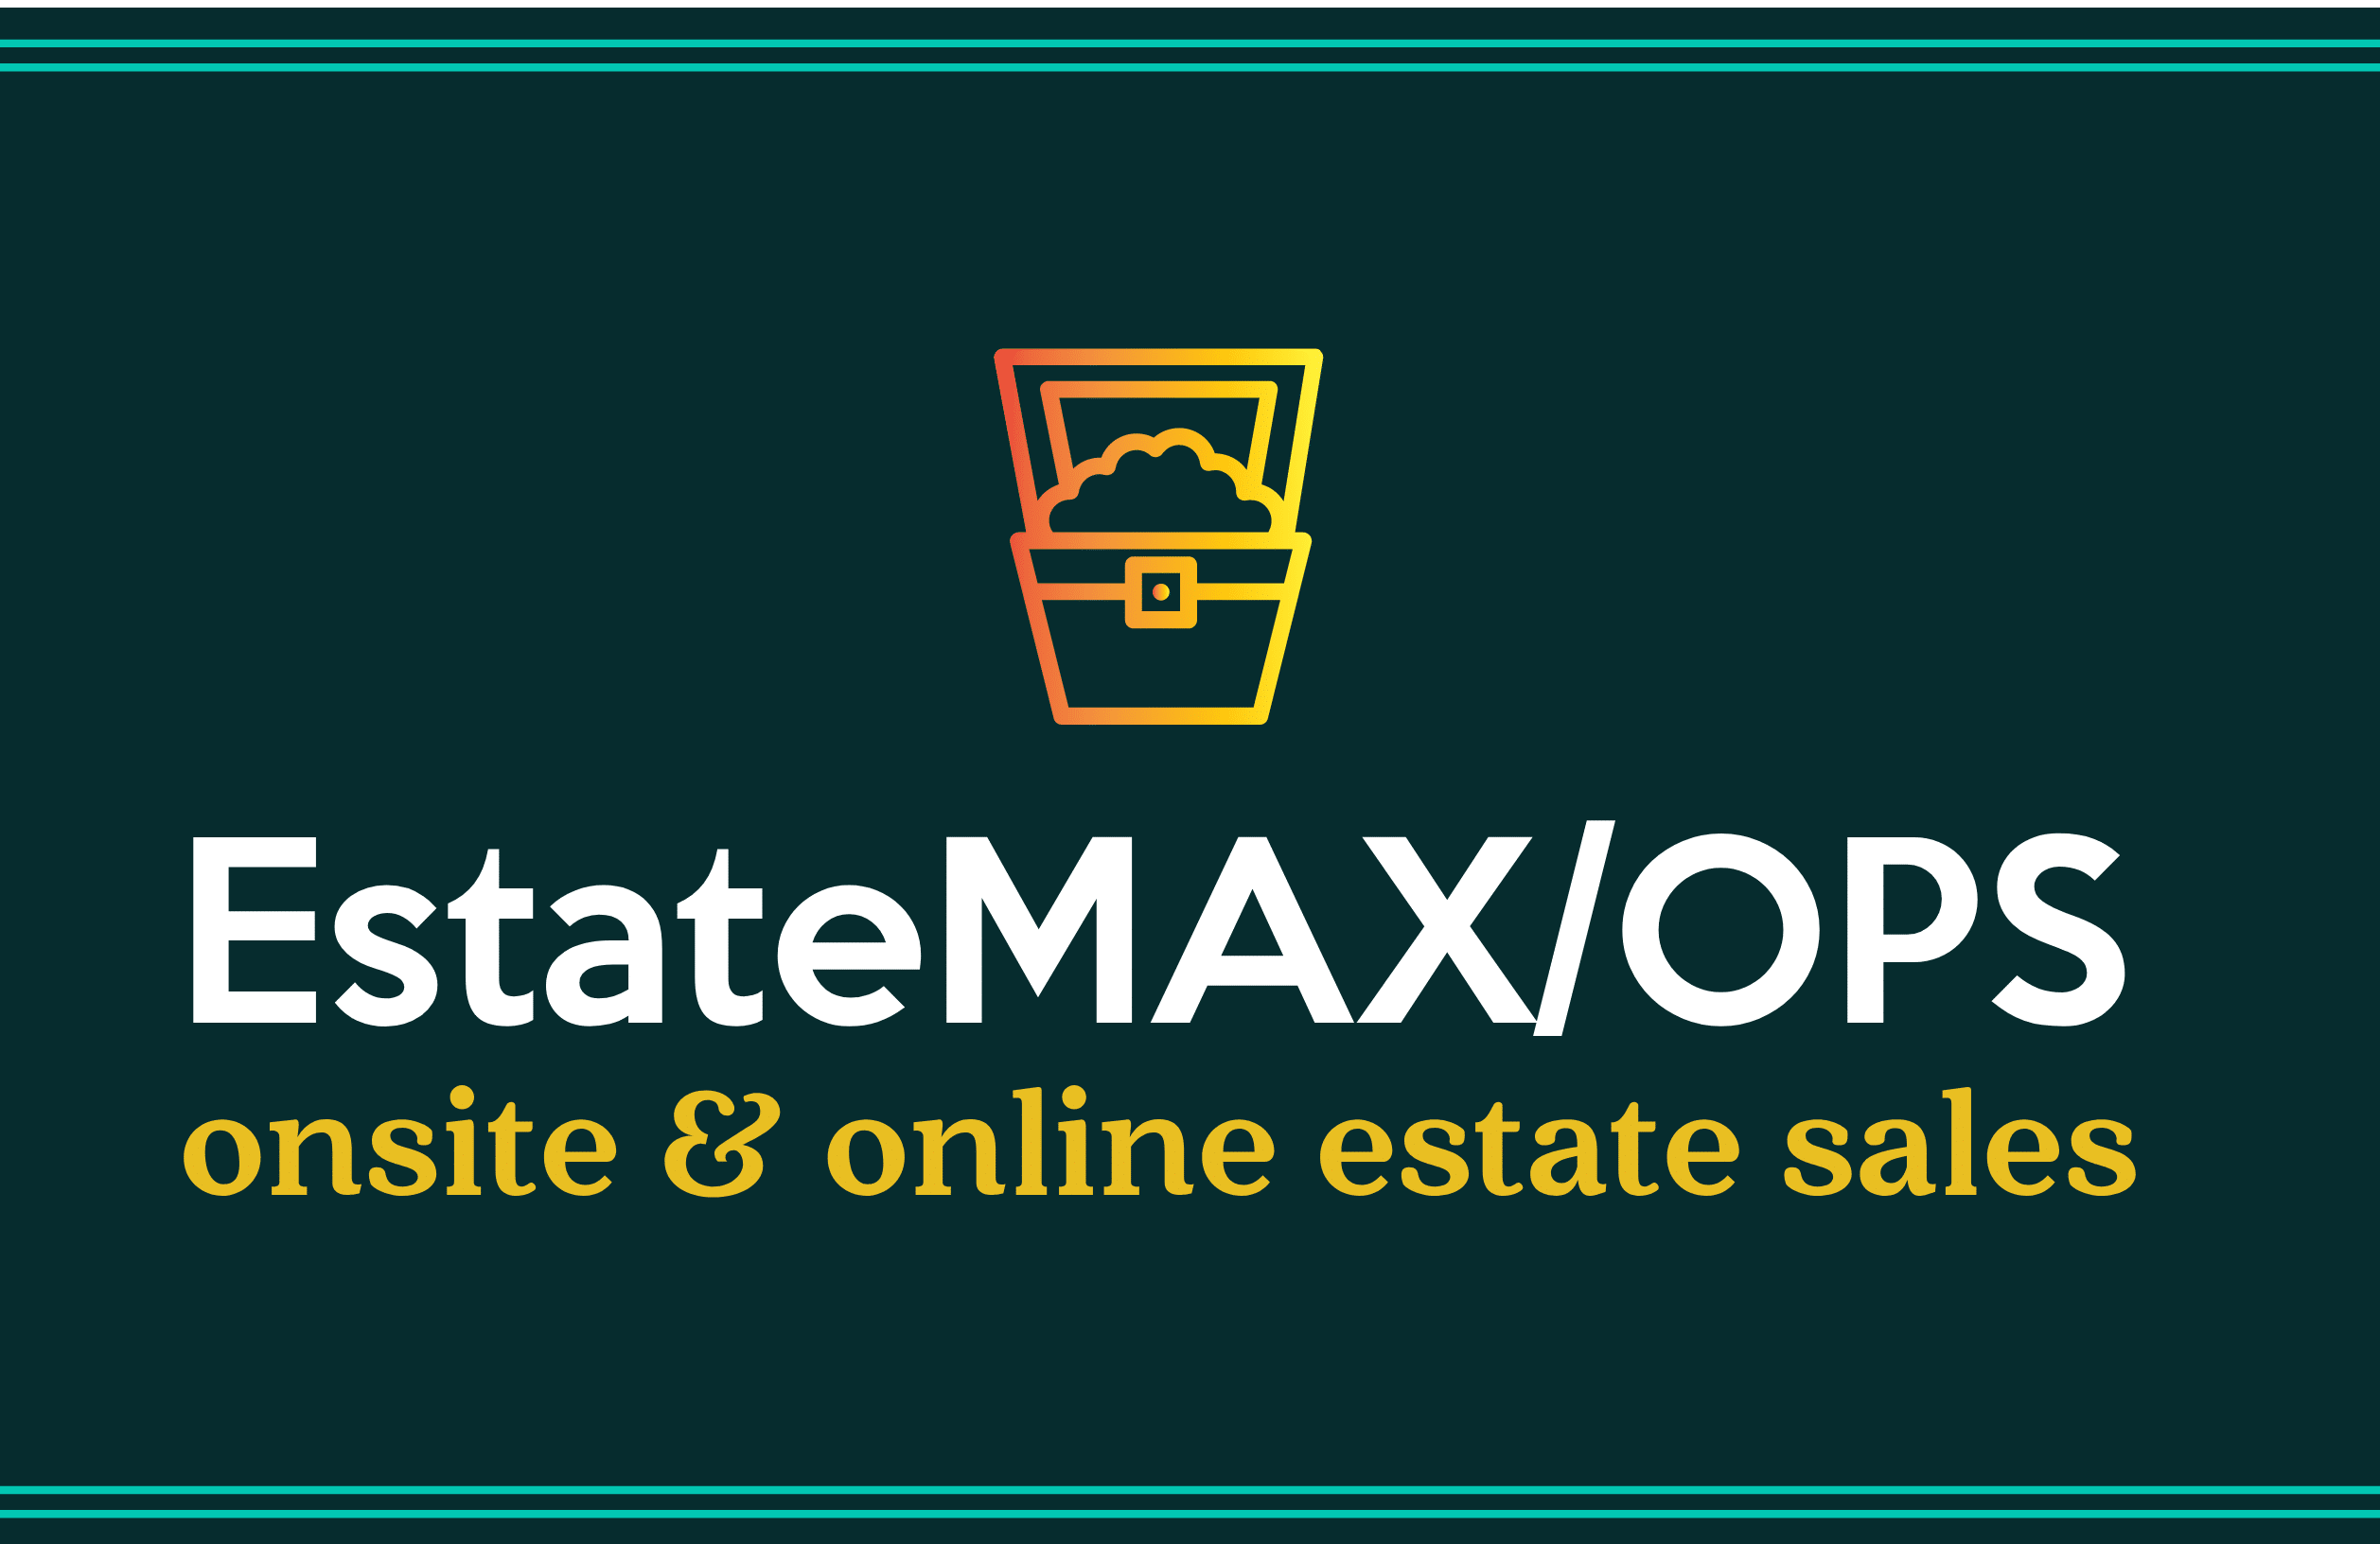 EstateMax/OPS : Estate & Downsizing Sales, Transitions Management, Turn-Key Services